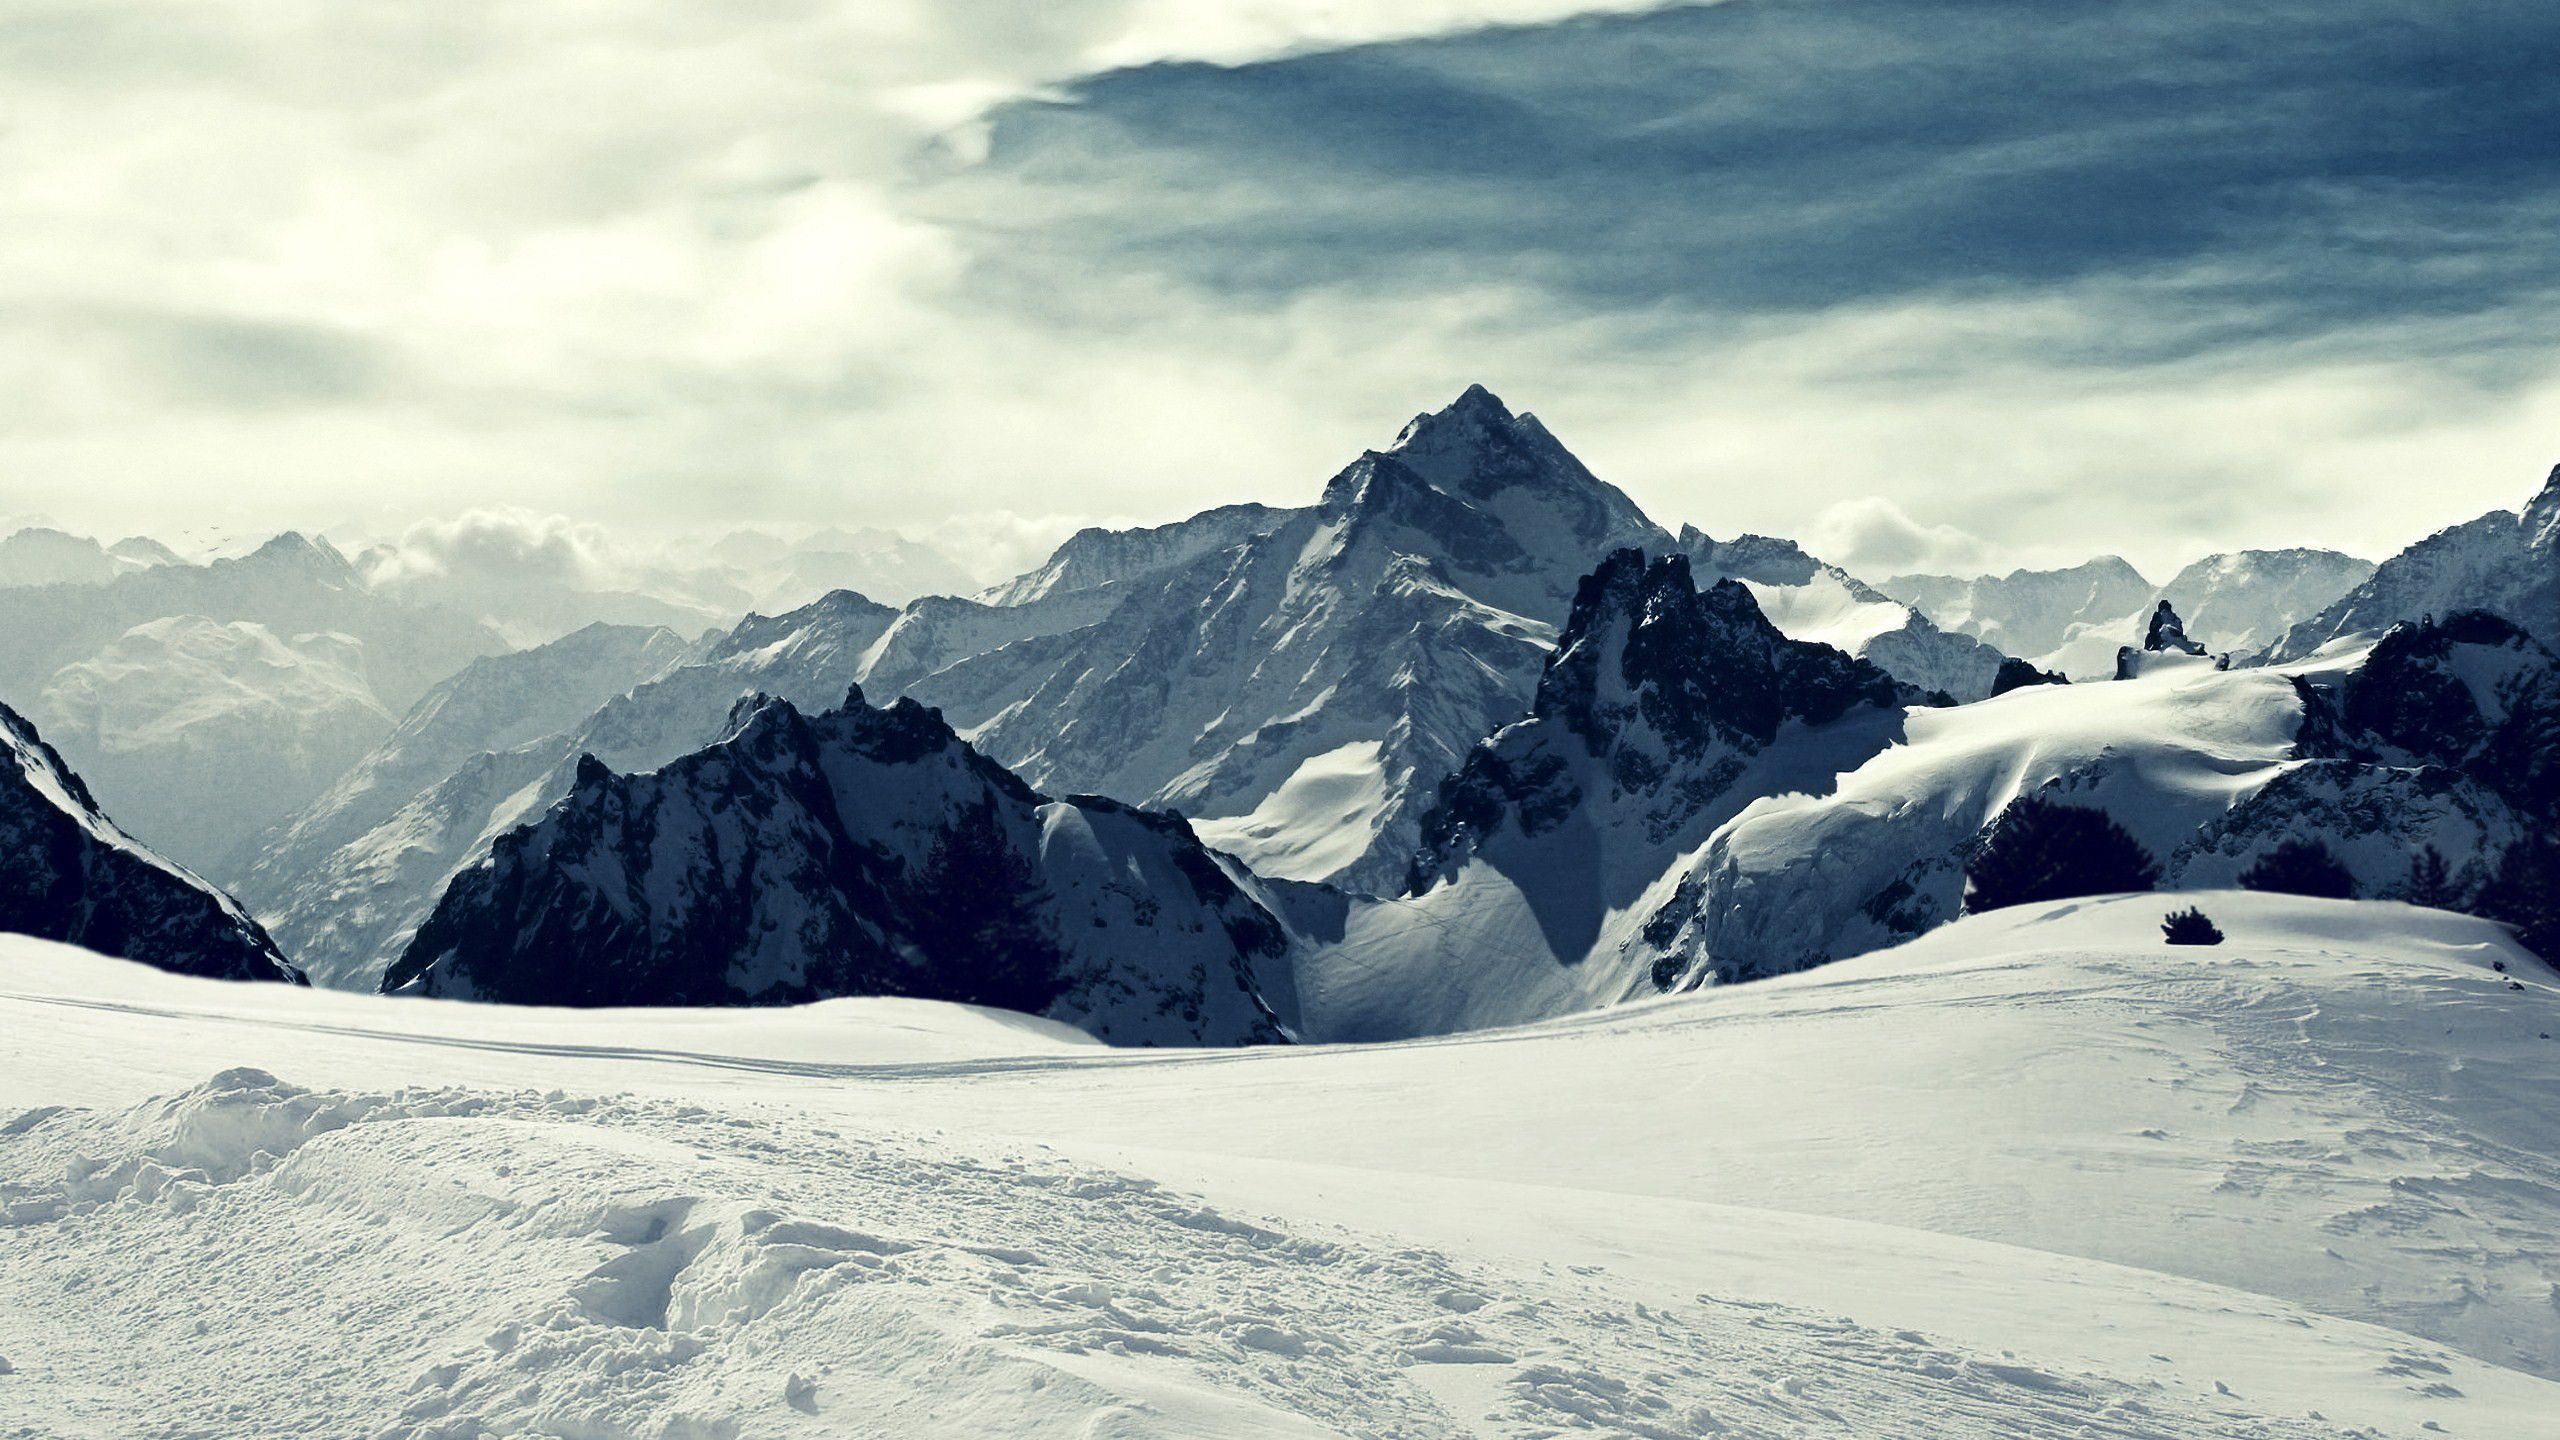 Snowy Mountains Wallpapers Wallpaper Cave Mountain Wallpaper Mountain Pictures Landscape Wallpaper